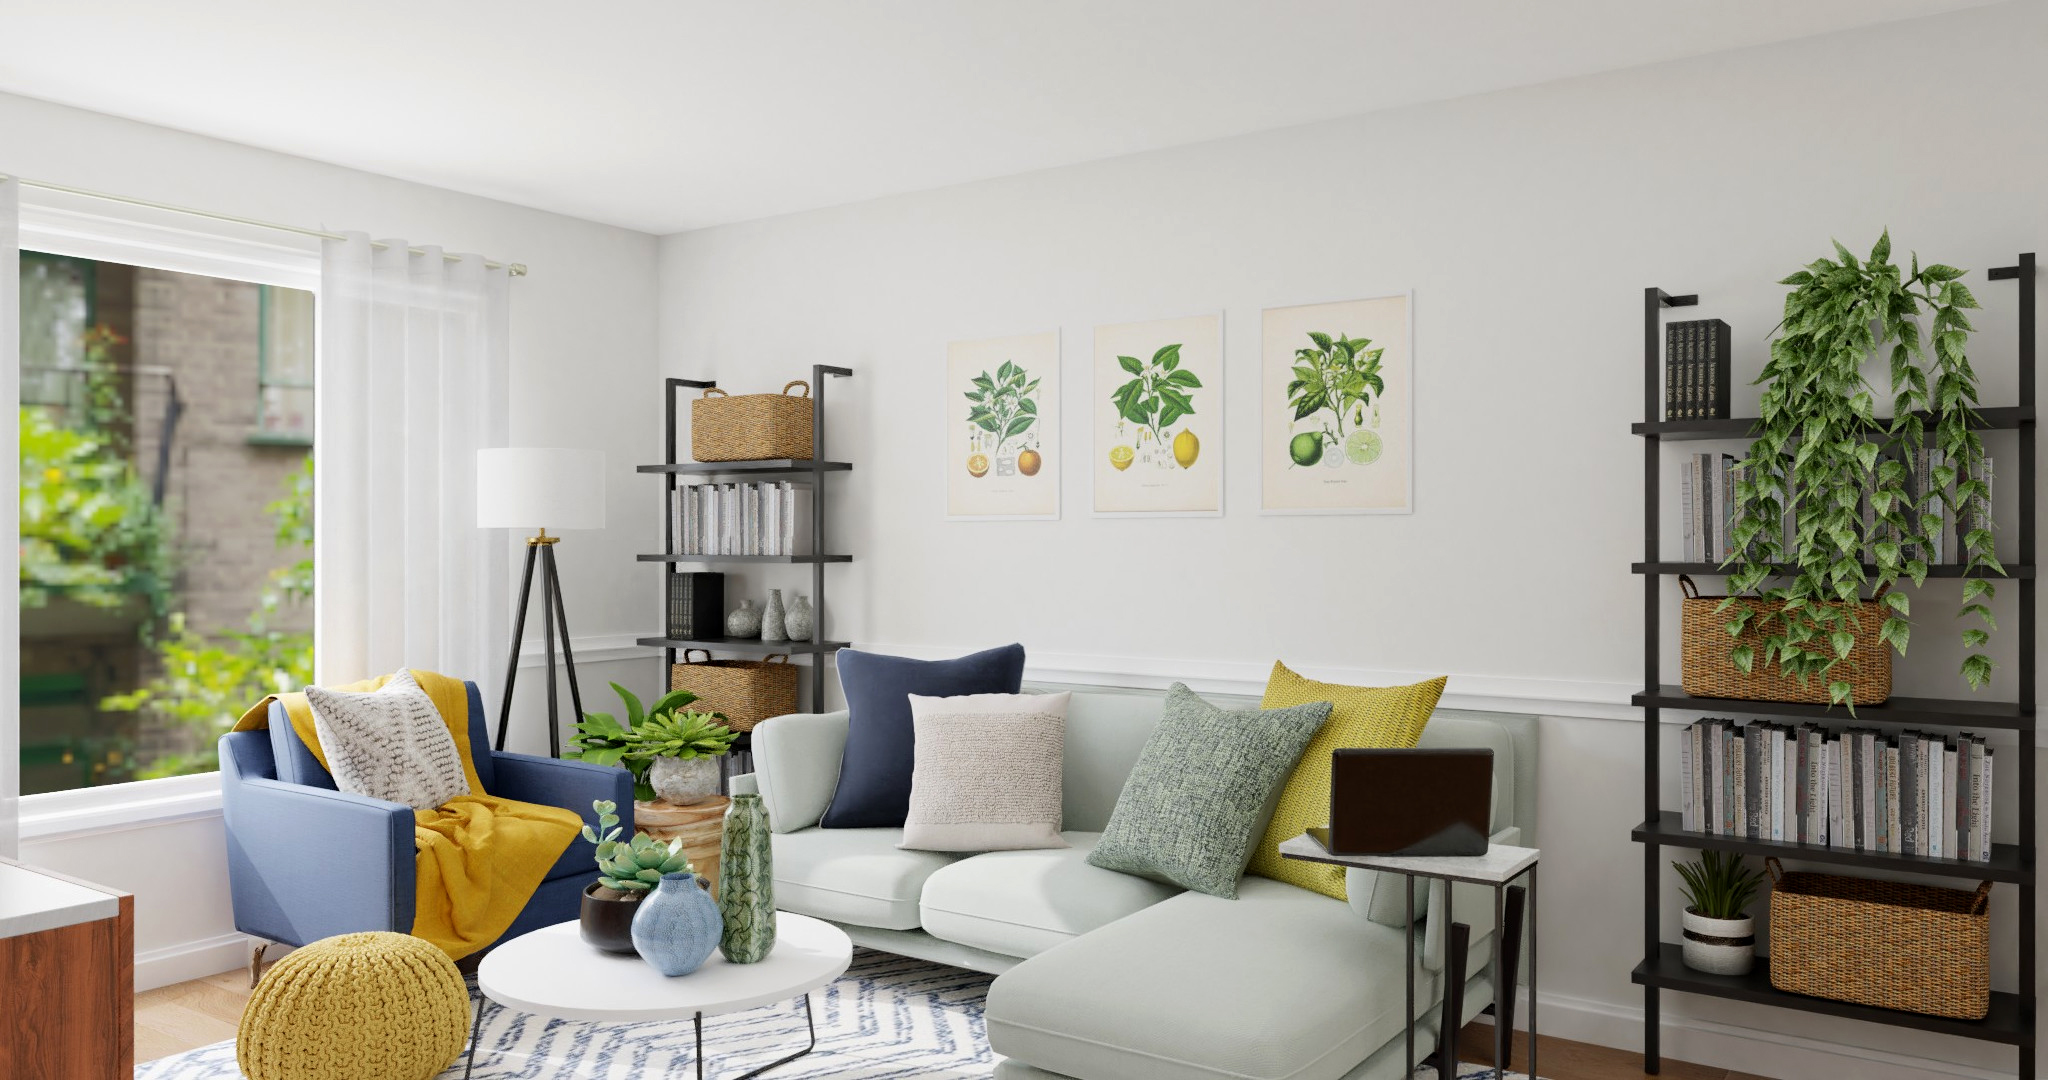 7 Living Room Decor Ideas To Freshen Up Your Home S Look And Feel For Spring Spacejoy